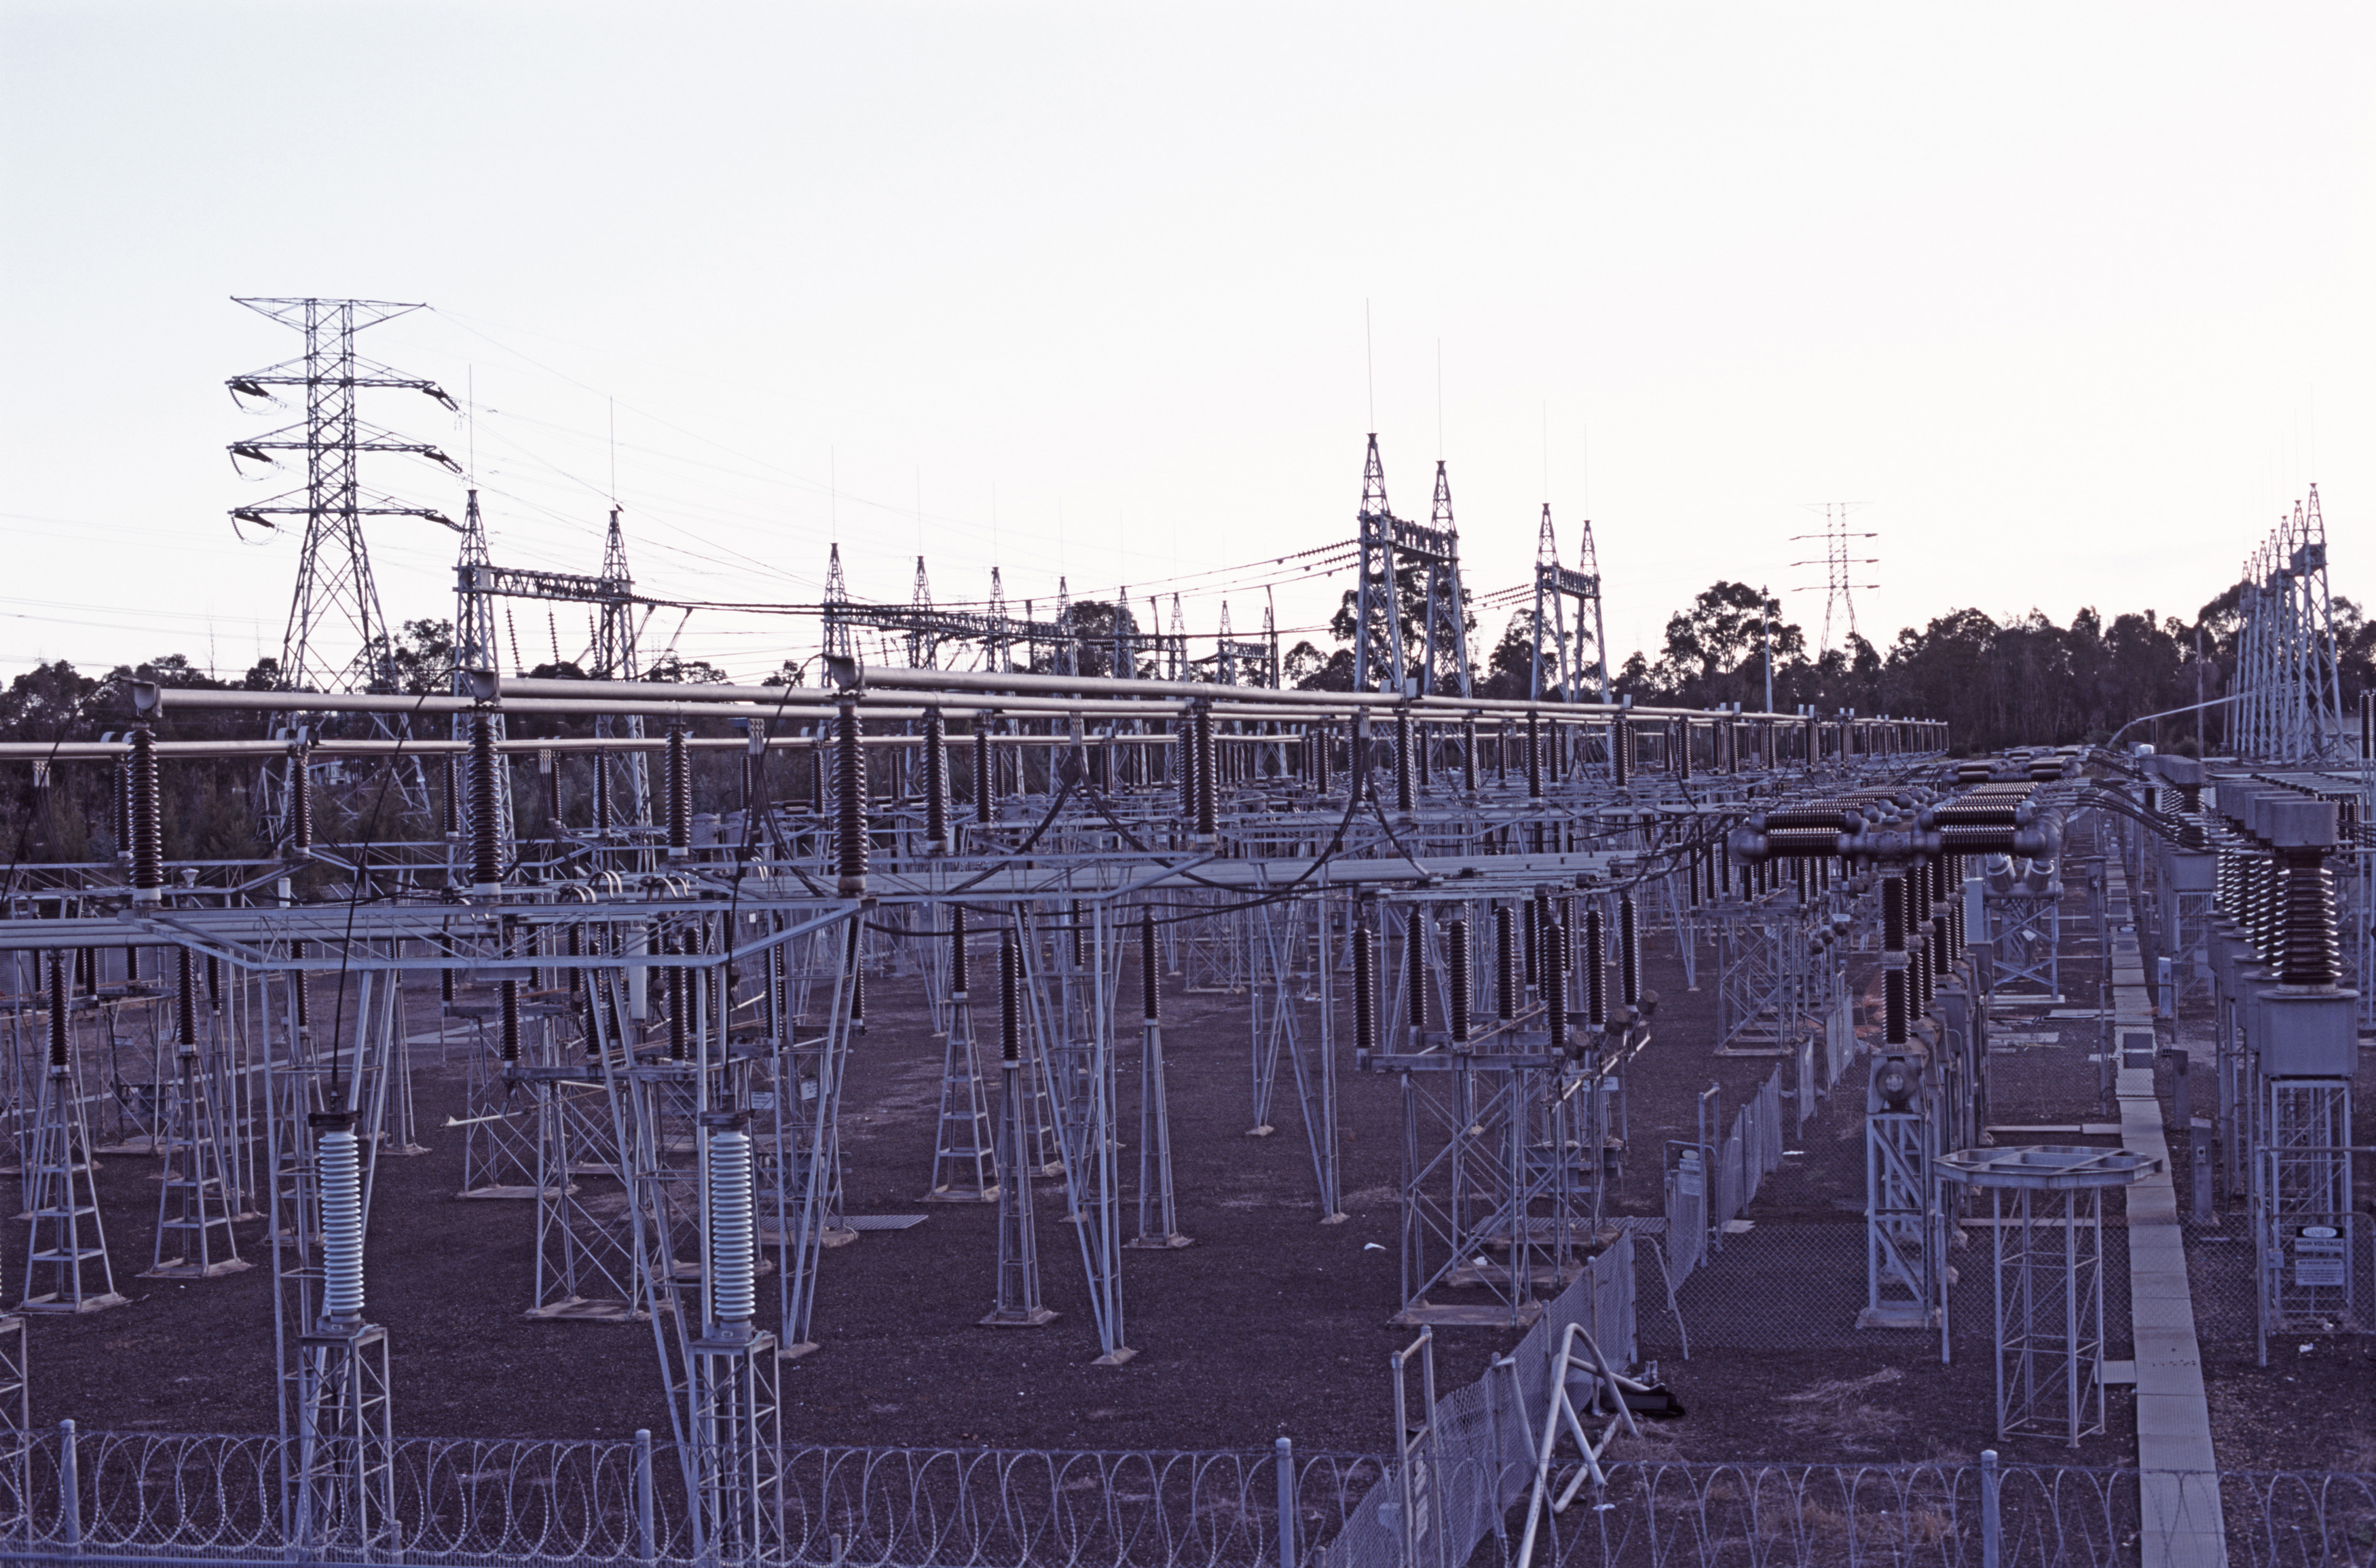 a large electricity distribution switching station. equipment allows power to be routed in different ways and to isolate transmission lines under fault conditions